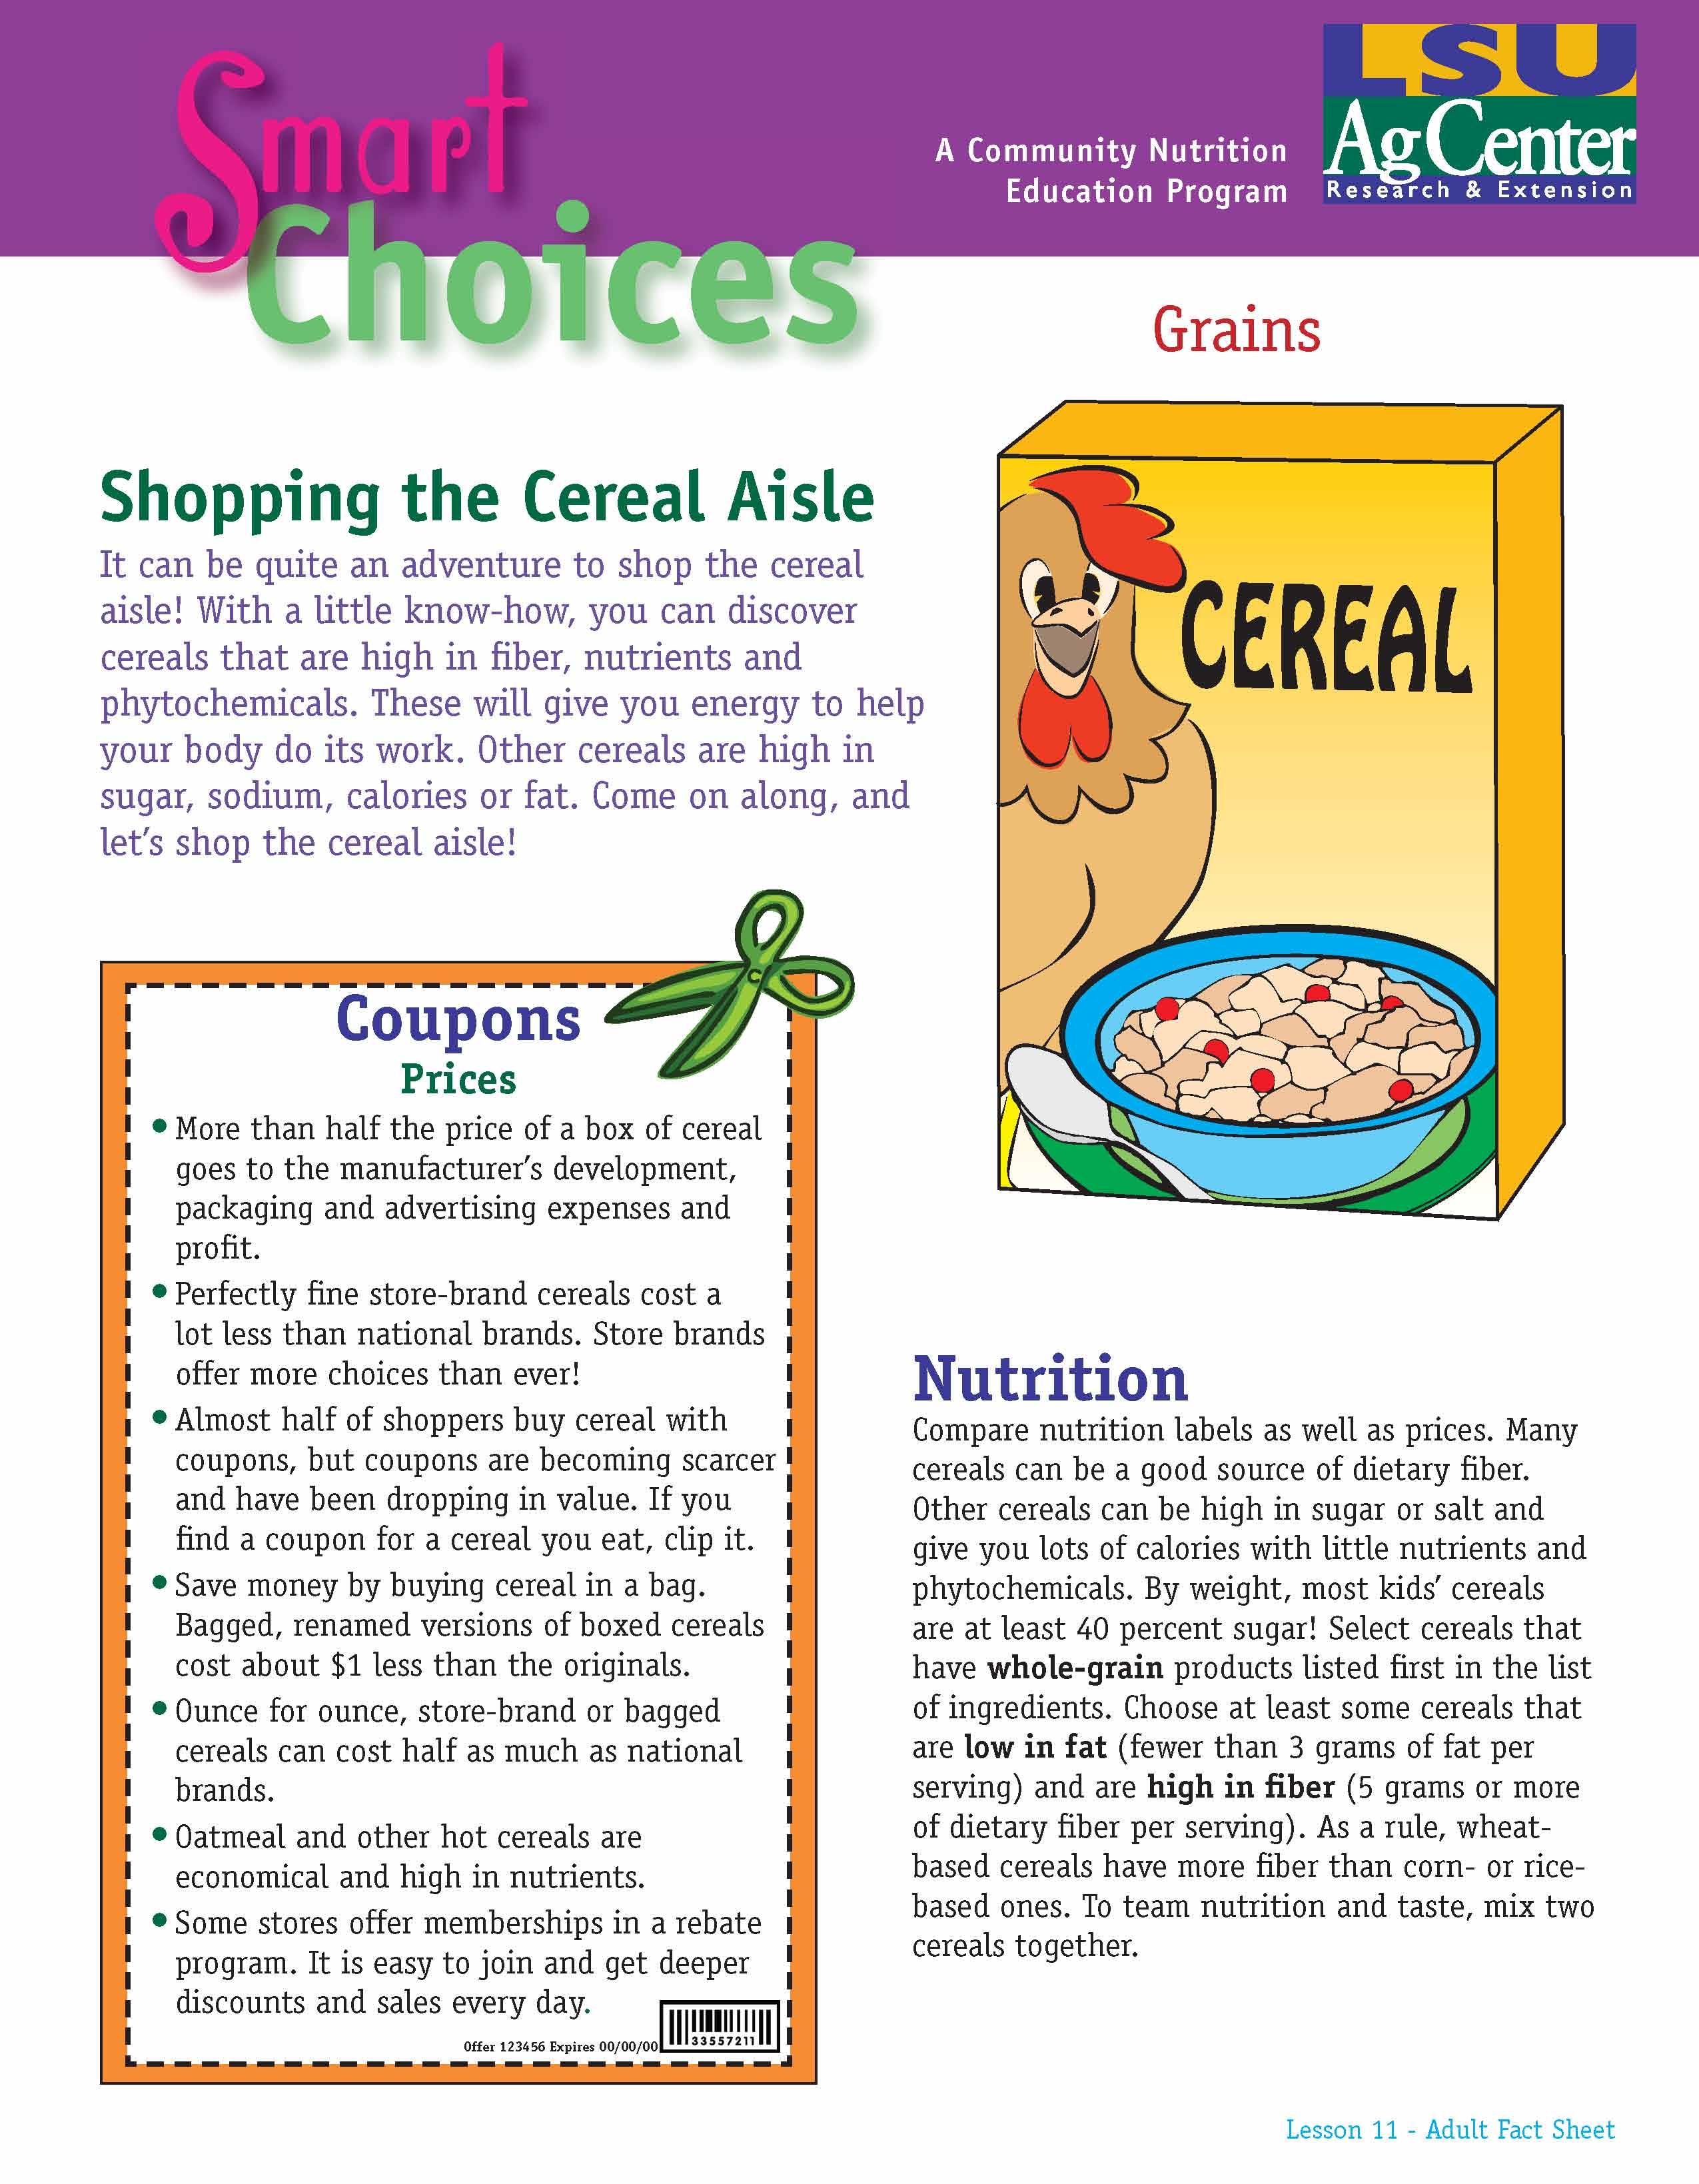 Smart Choices:  Shopping the Cereal Aisle